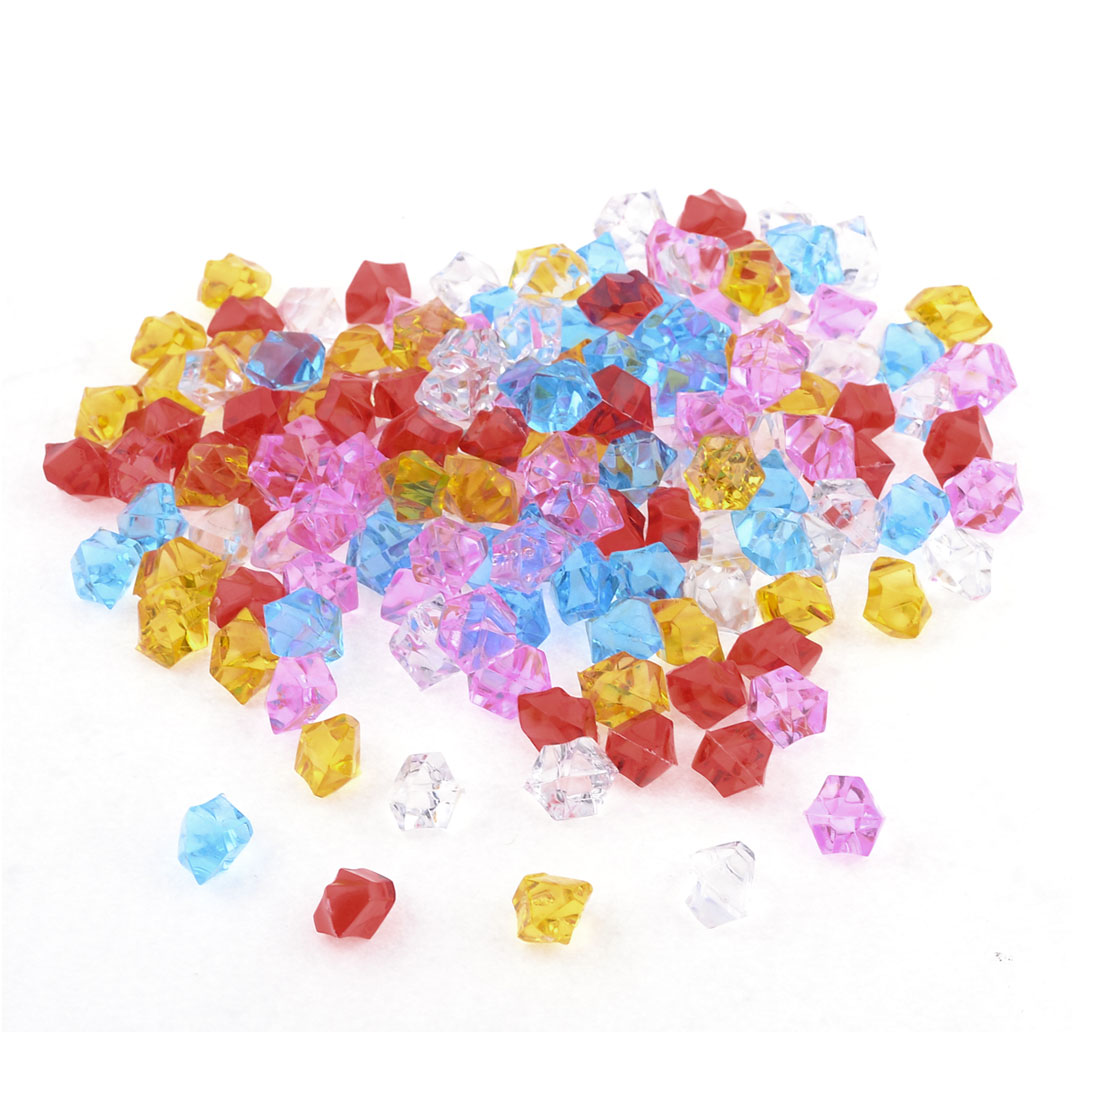 120 Pcs Assorted Color Plastic Faceted Beads Decor for Fish Tank Vase